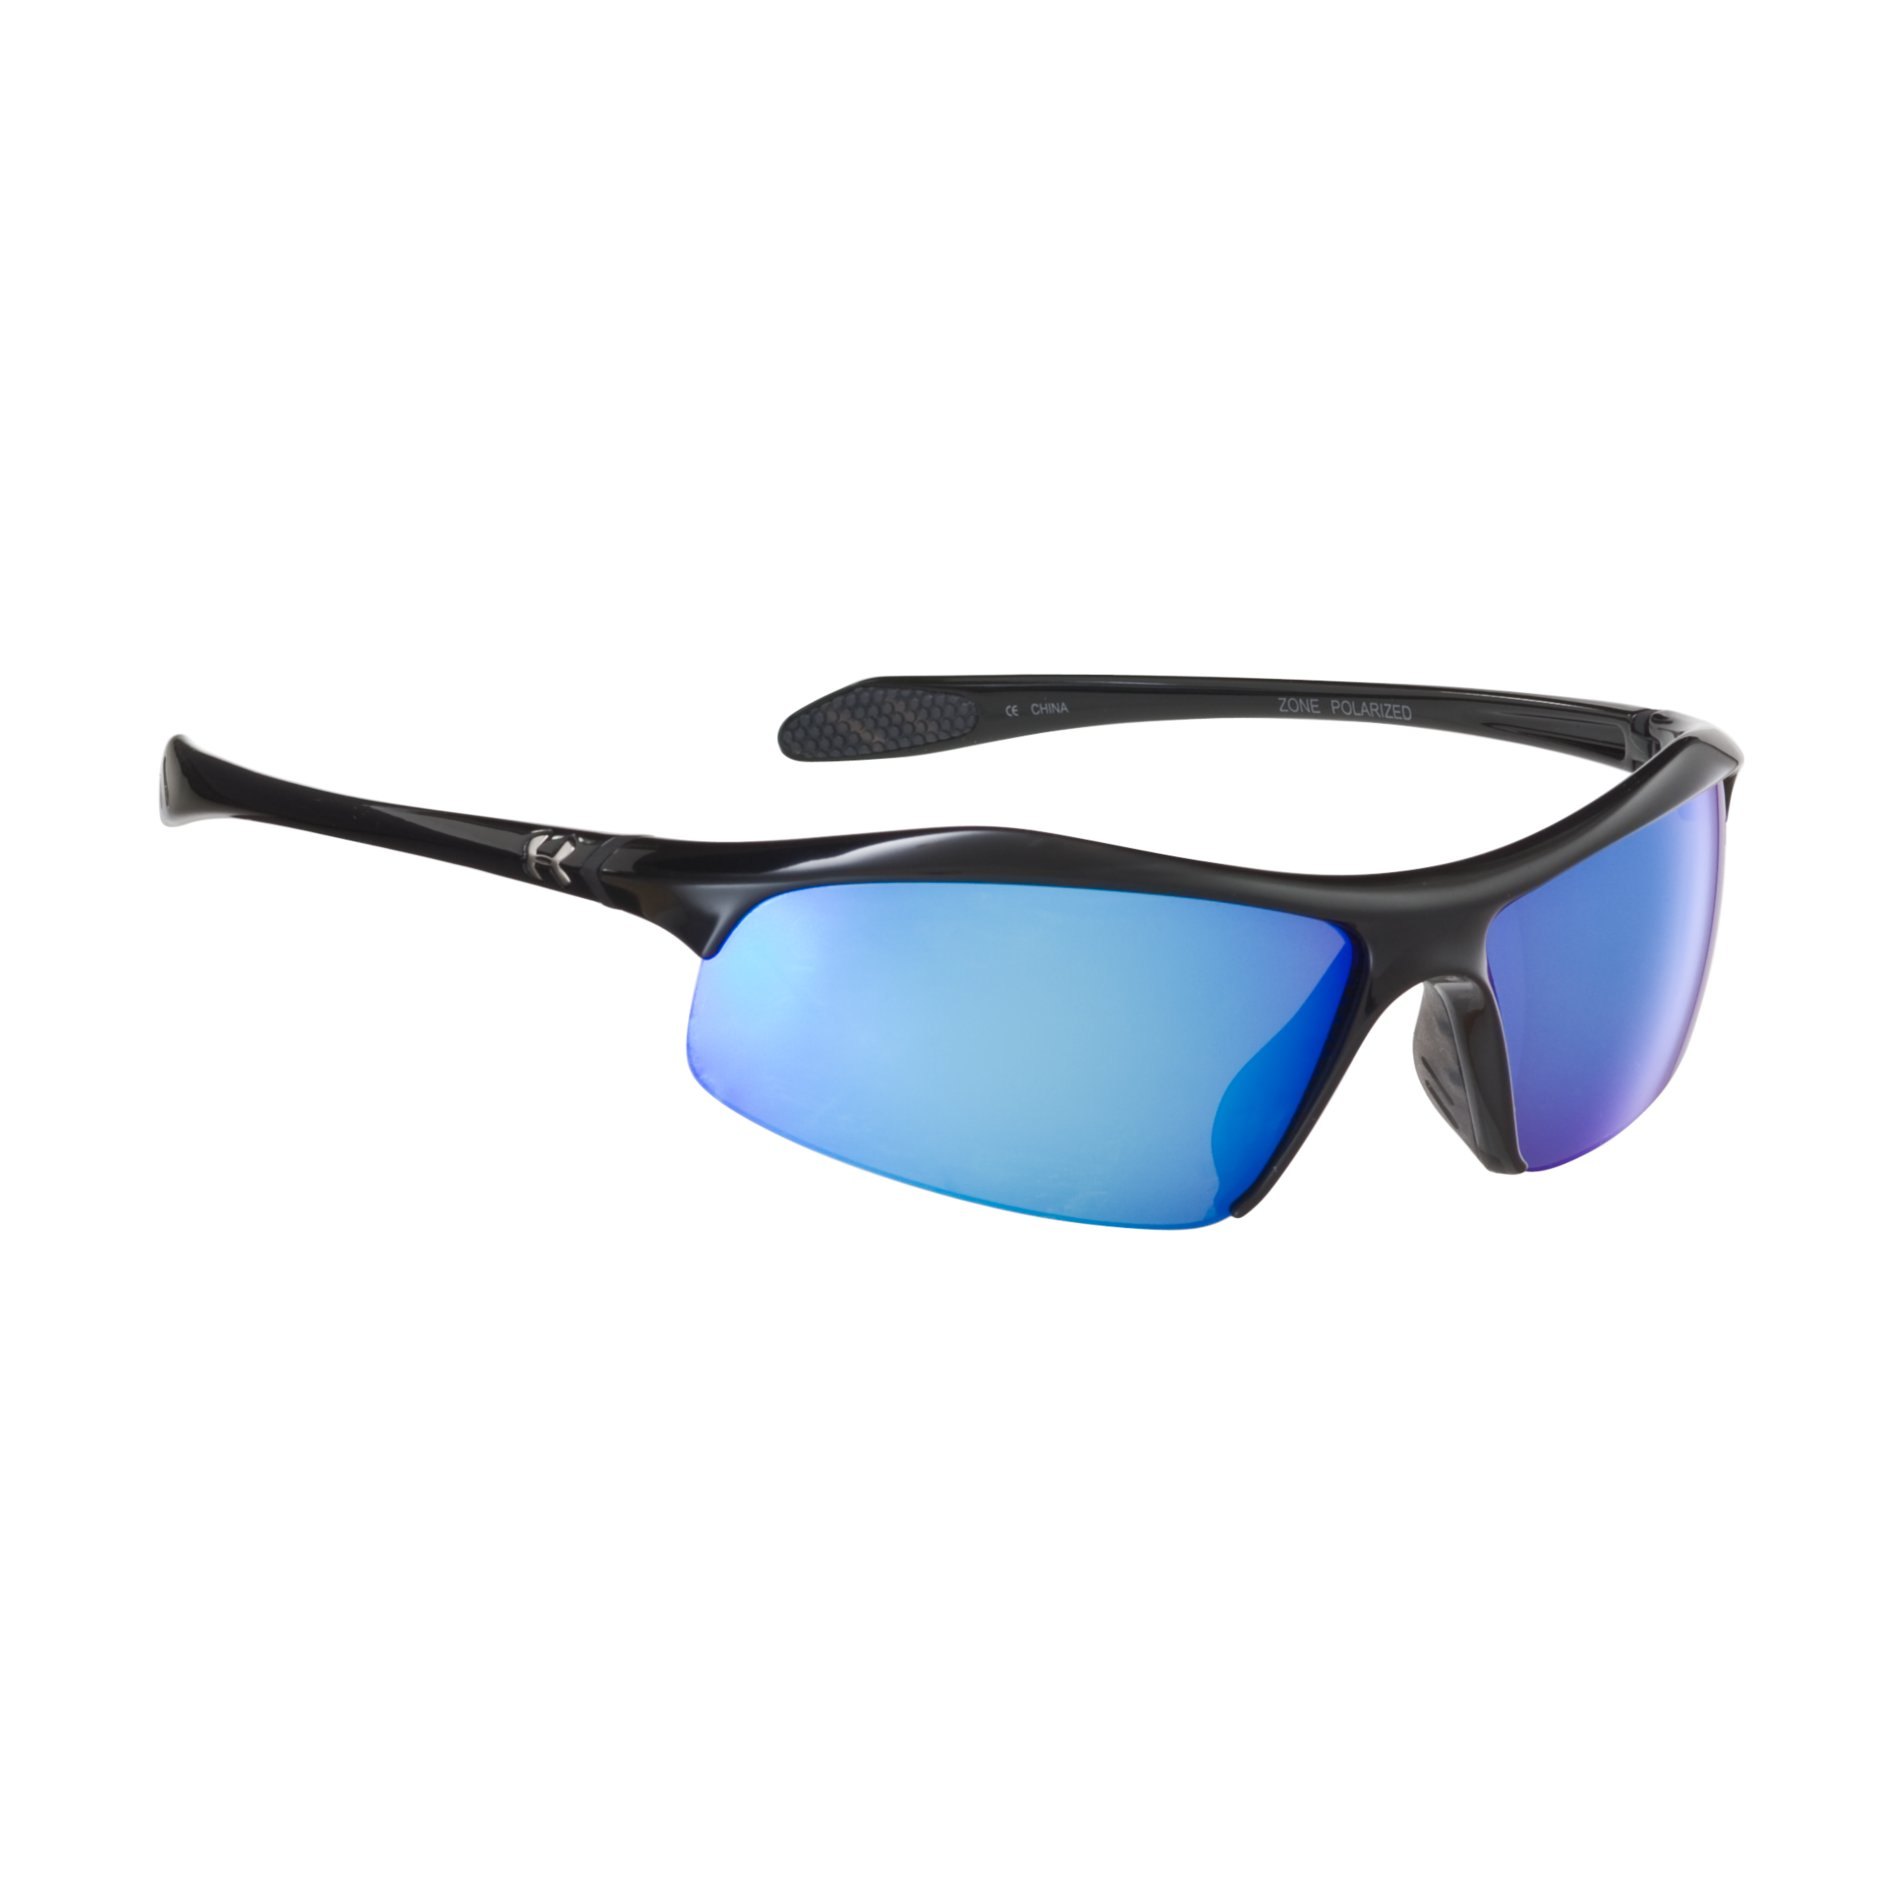 Cheap or Expensive Sunglasses? Southeast Traders